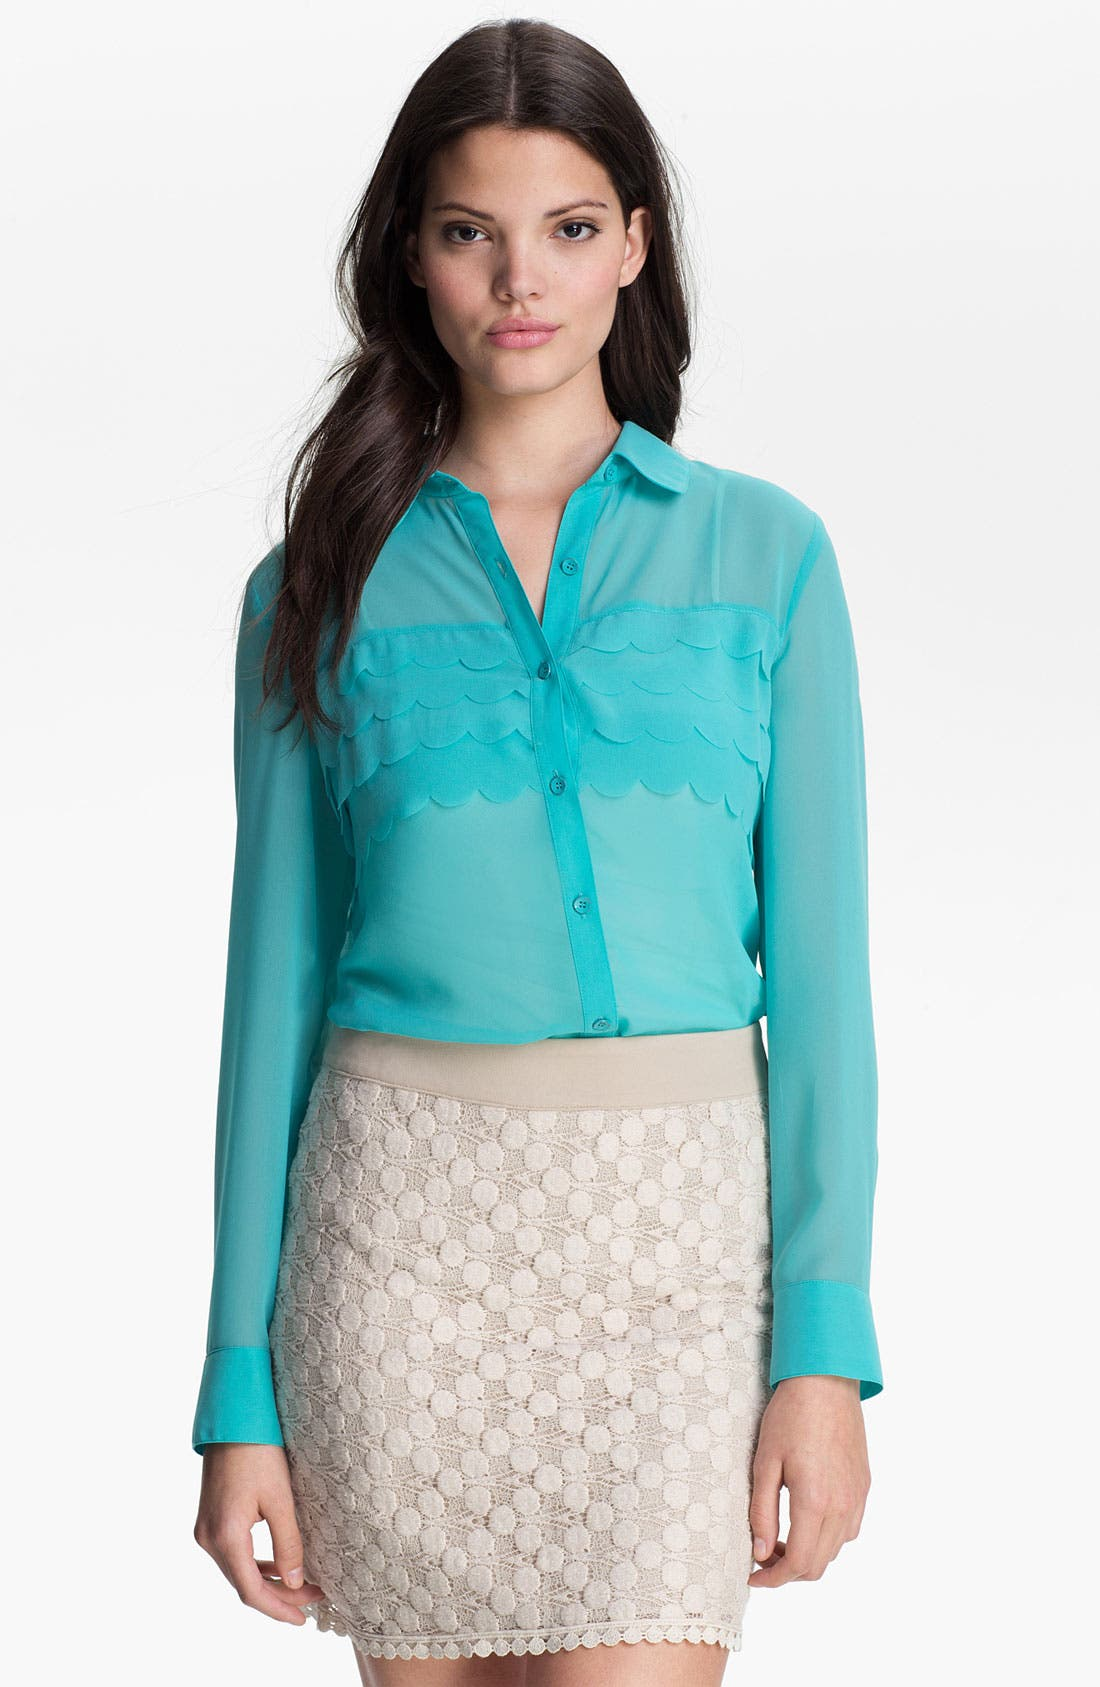 Alternate Image 1 Selected - Kensie Tiered Petals Chiffon Blouse